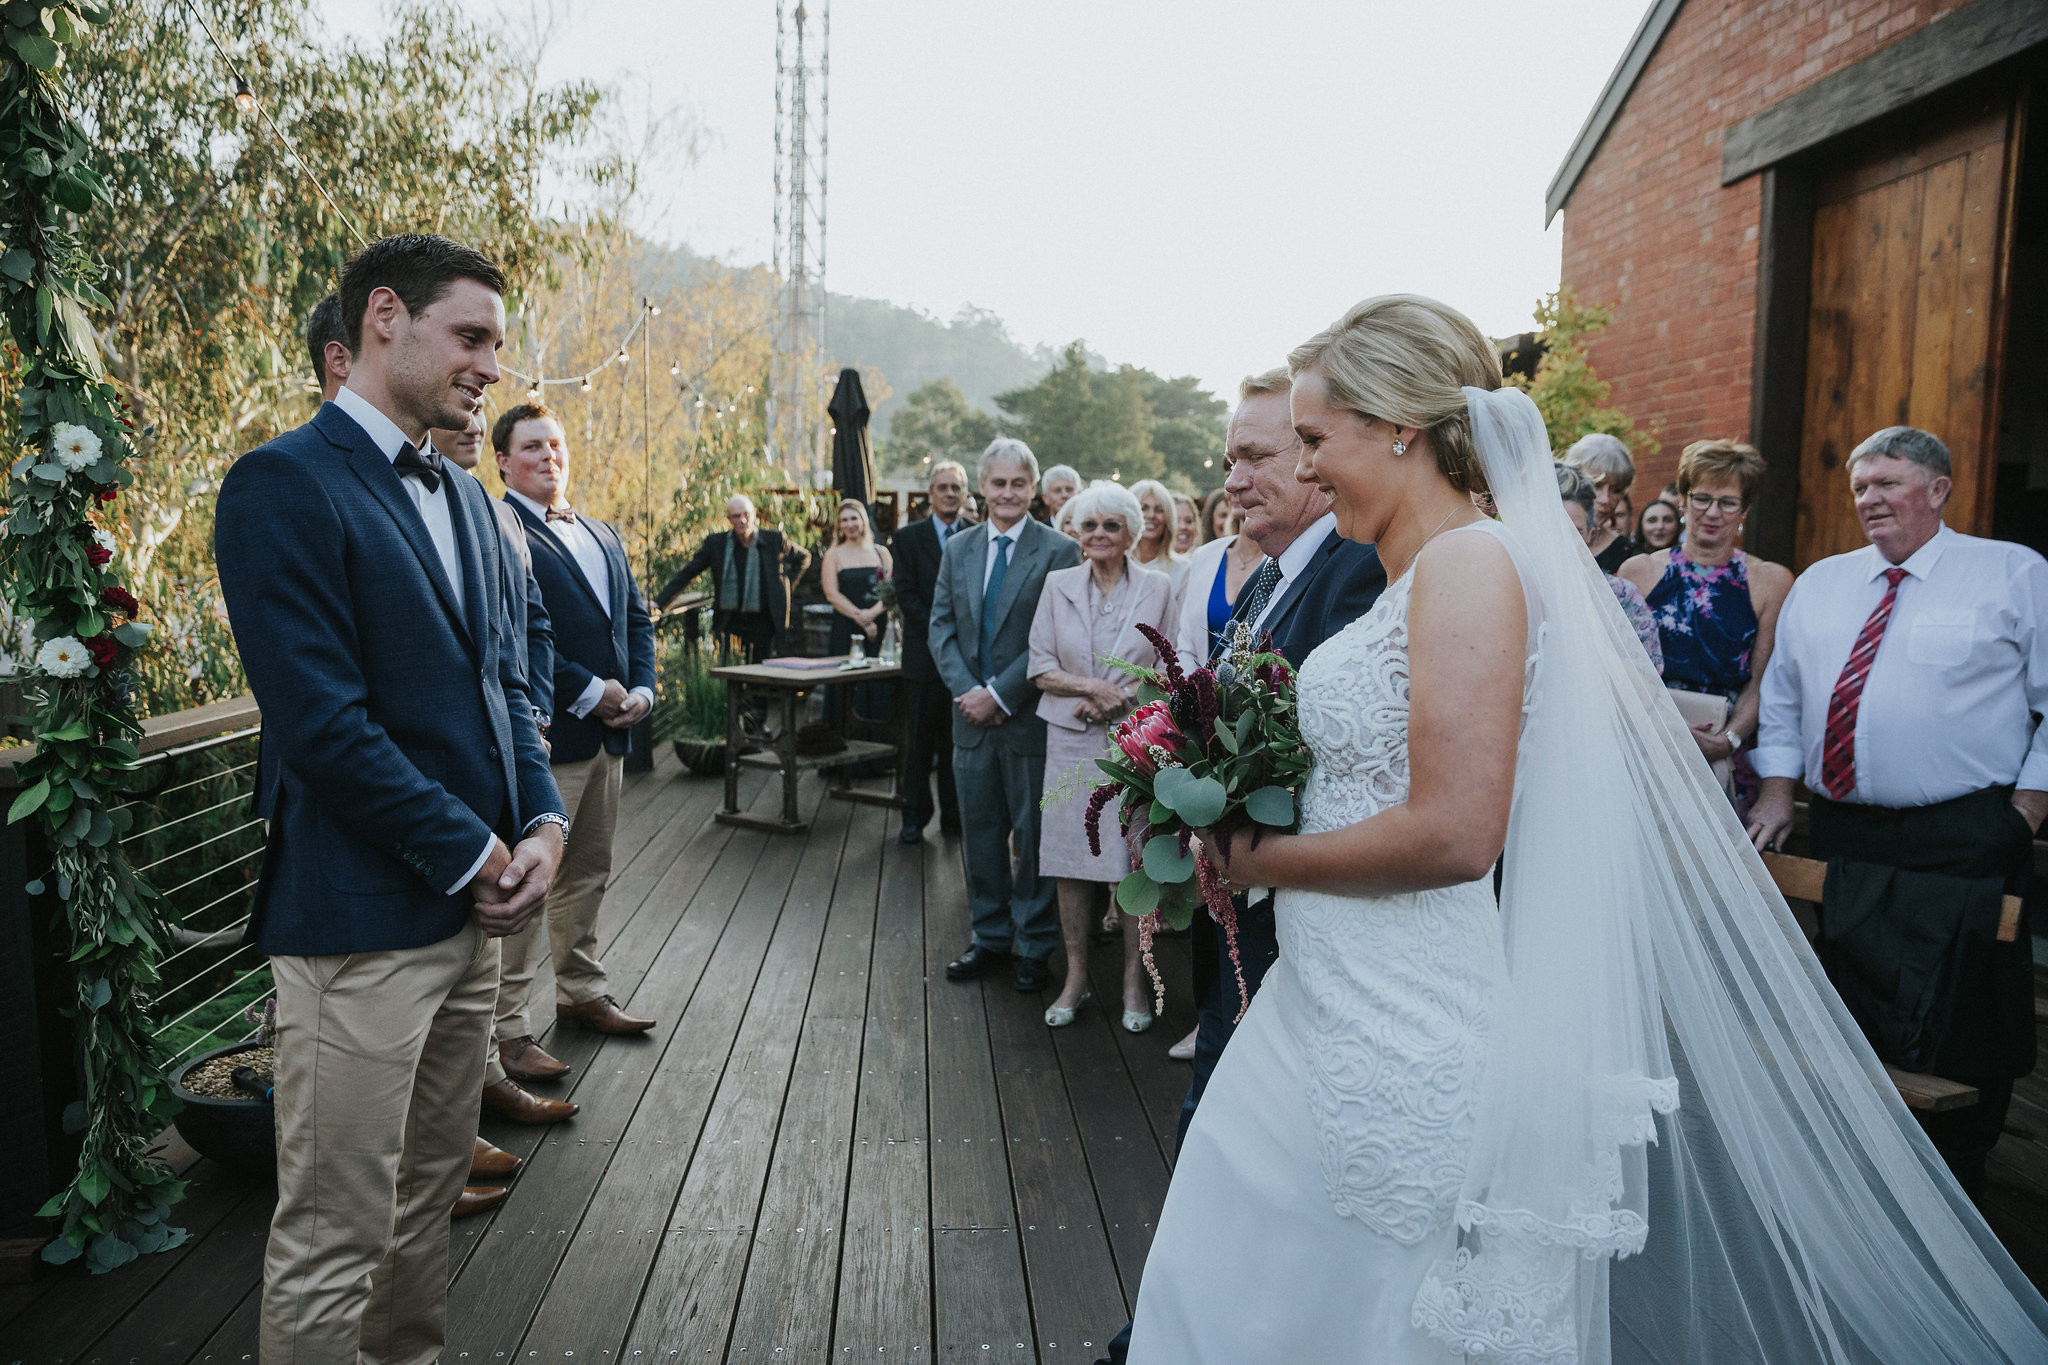 Summer Wedding, Rustic Wedding, Mountain Wedding, Australia Wedding